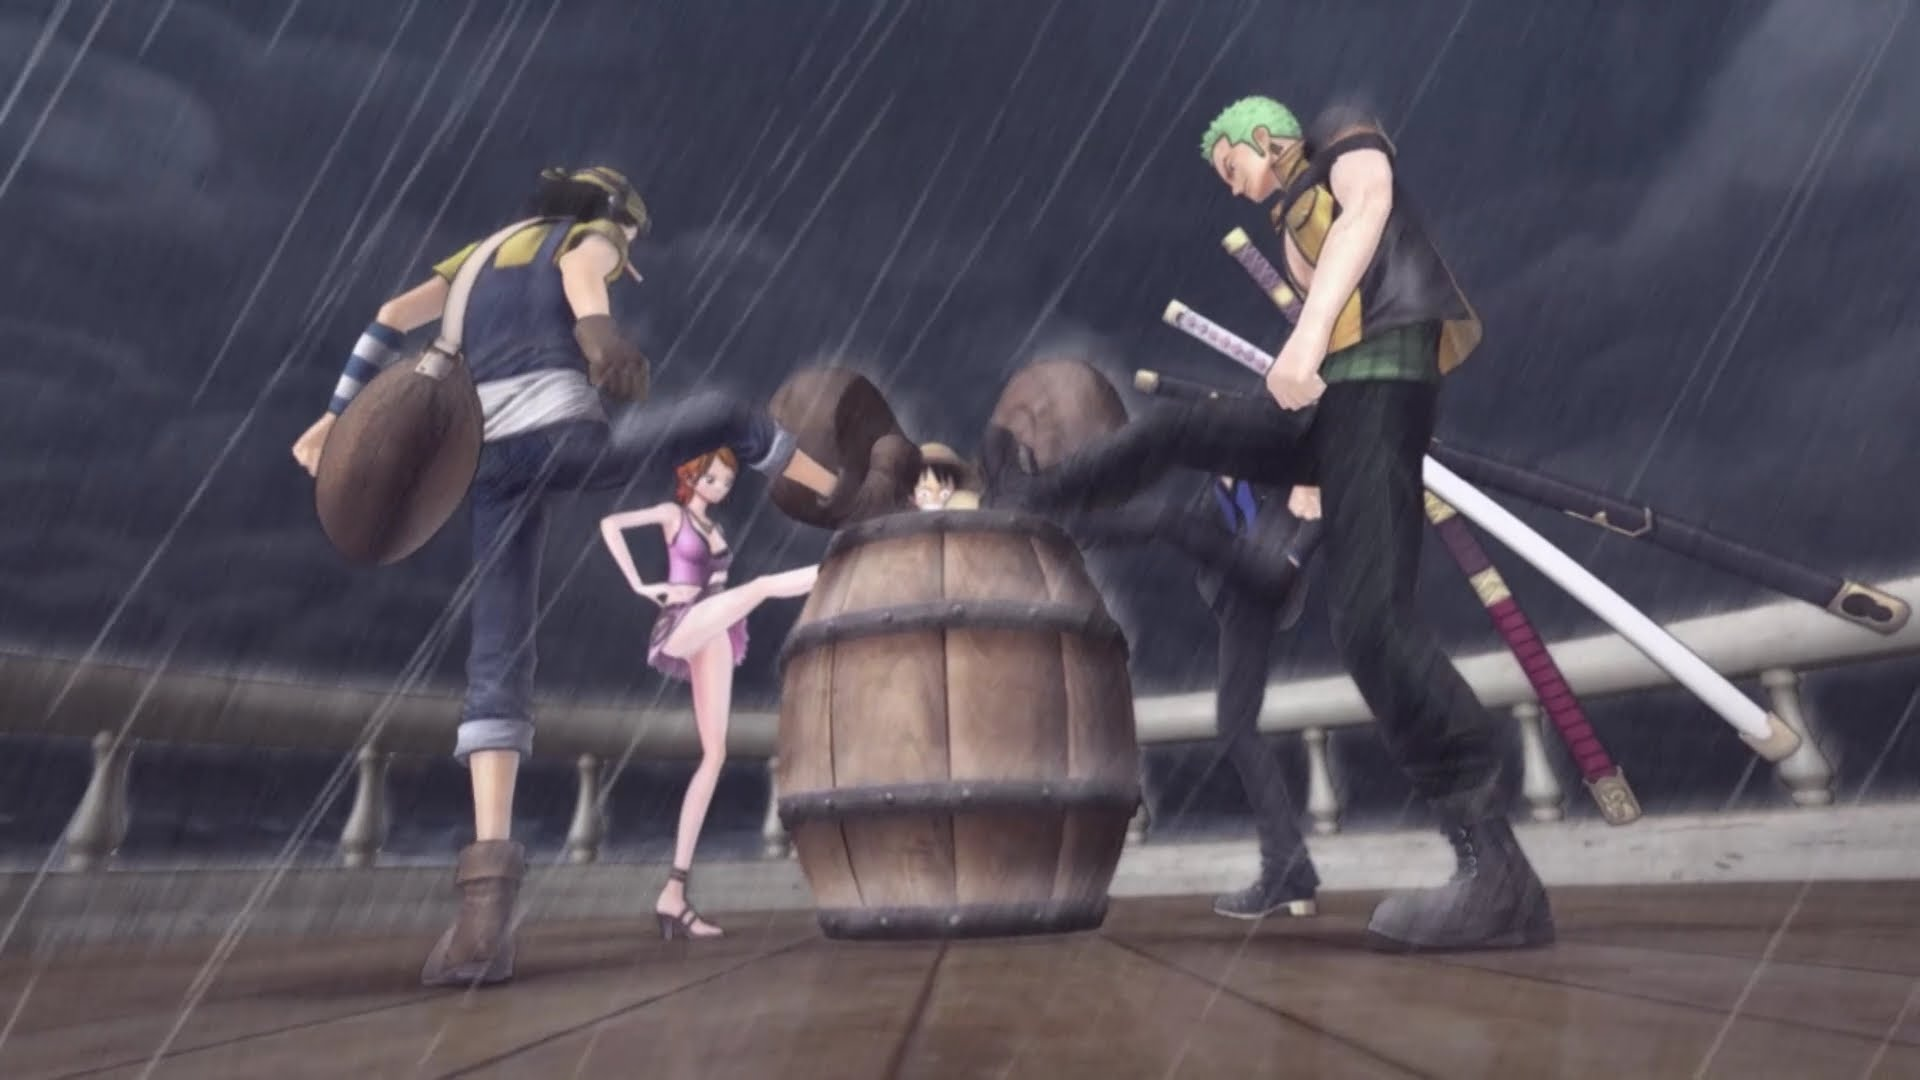 [Análise] - One Piece Pirate Warriors 3 - PS3/4/Vita/PC/Switch One-piece-pirate-warriors-3-thir